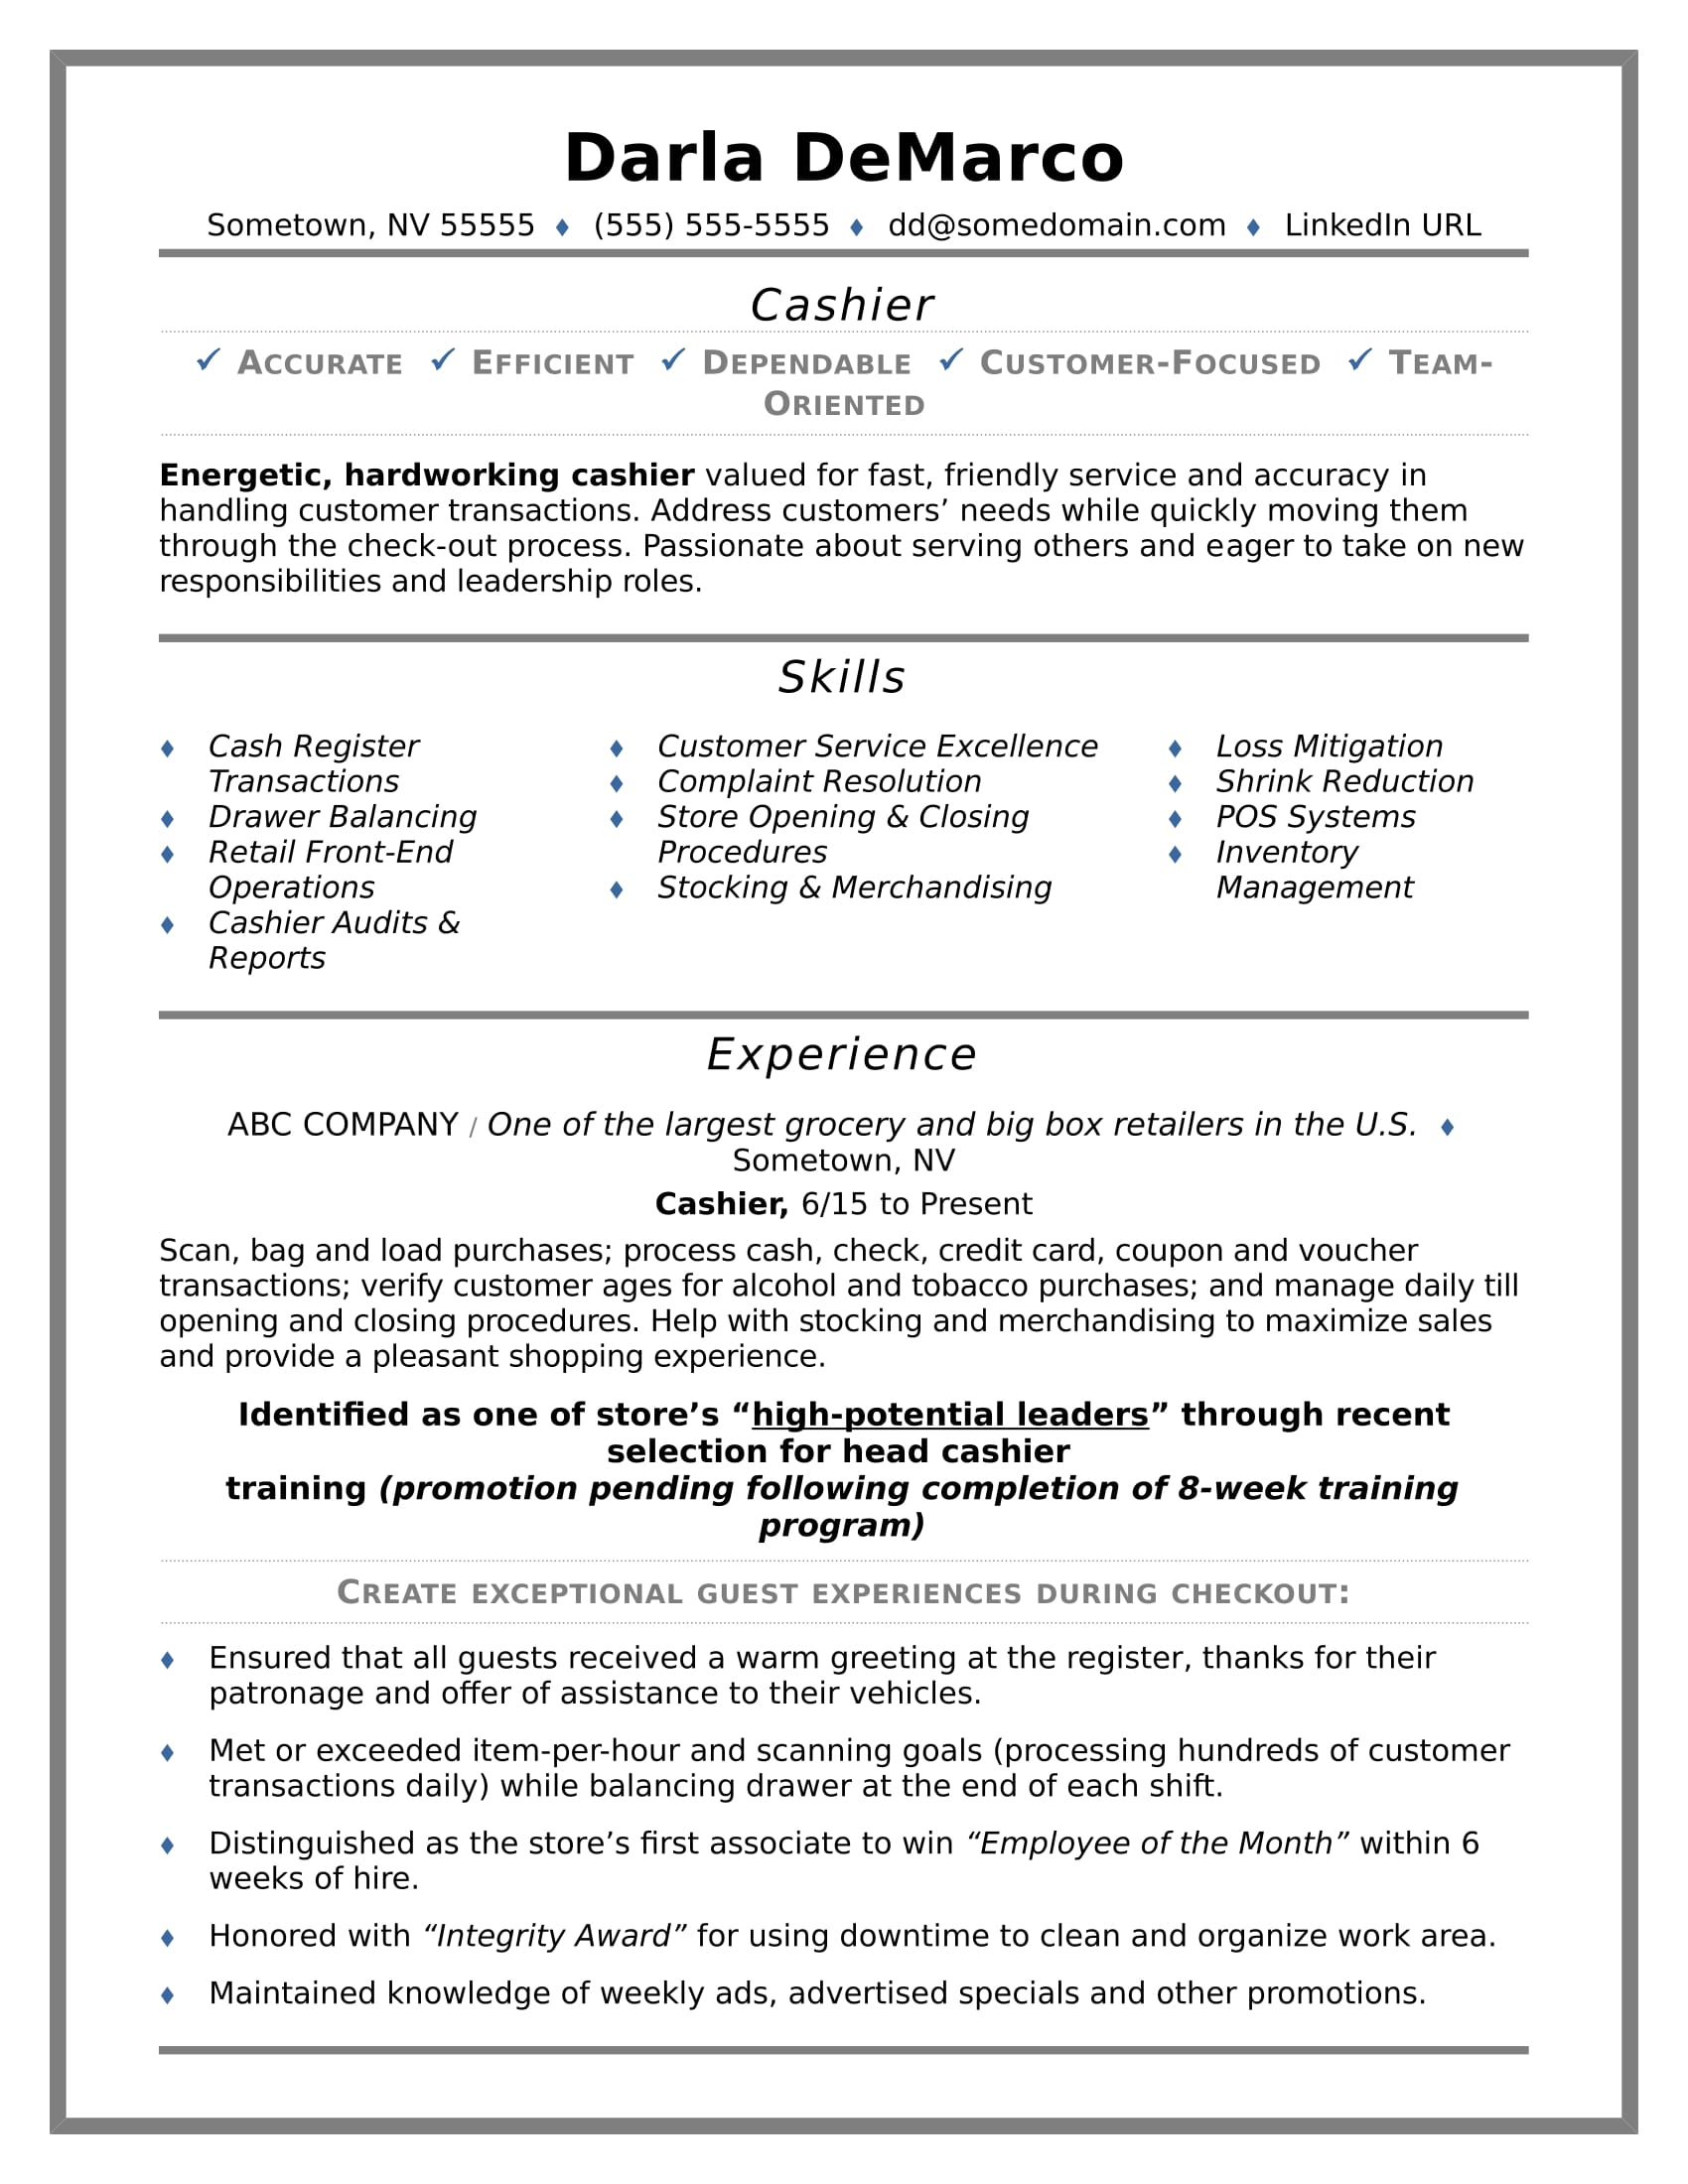 cashier resume sample - Resume Examples For Customer Service Jobs